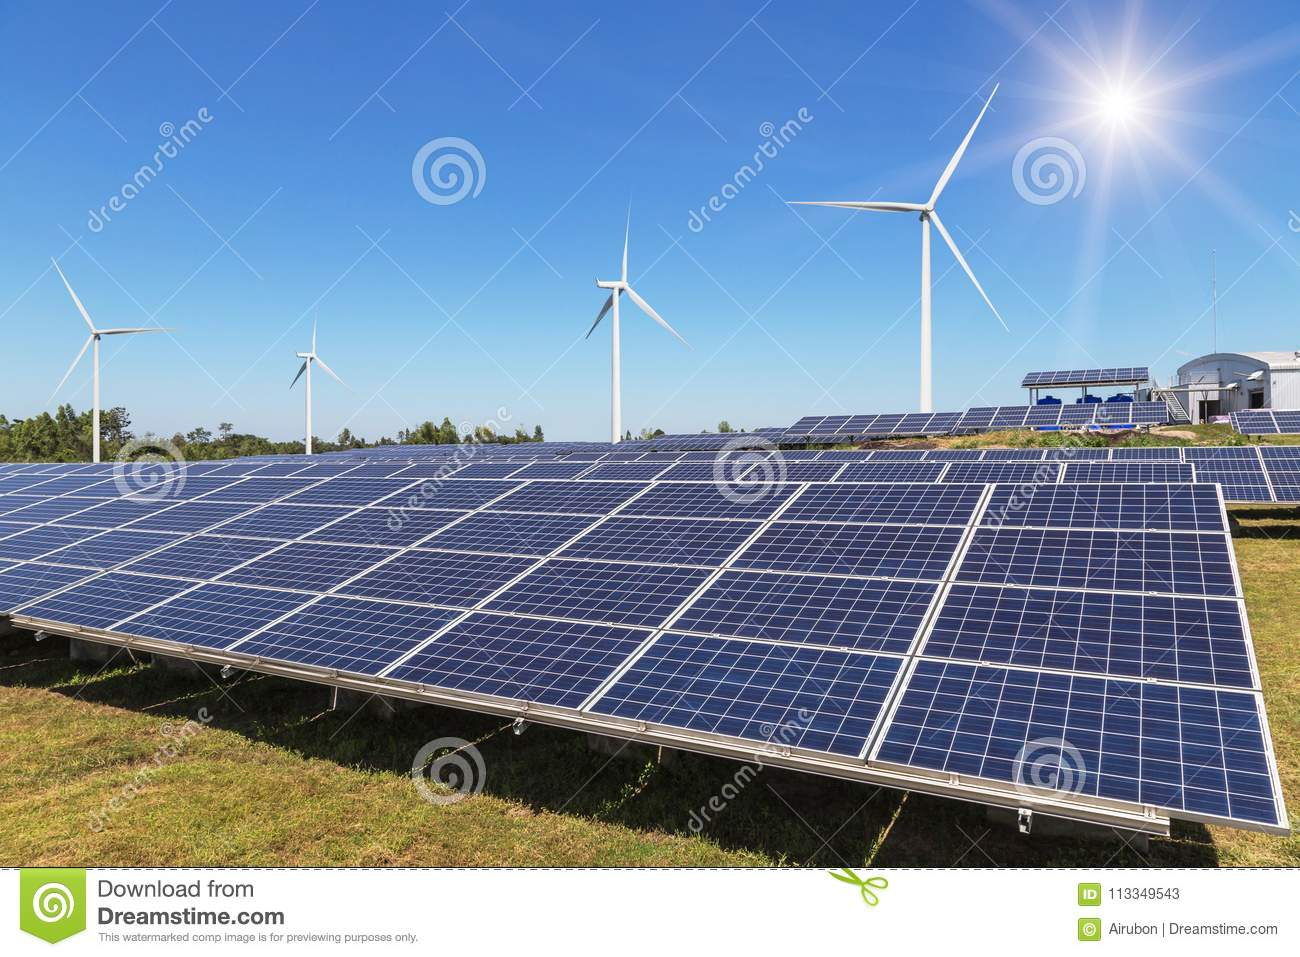 Rows array of polycrystalline silicon solar panels and wind turbines generating electricity in hybrid power plant systems station